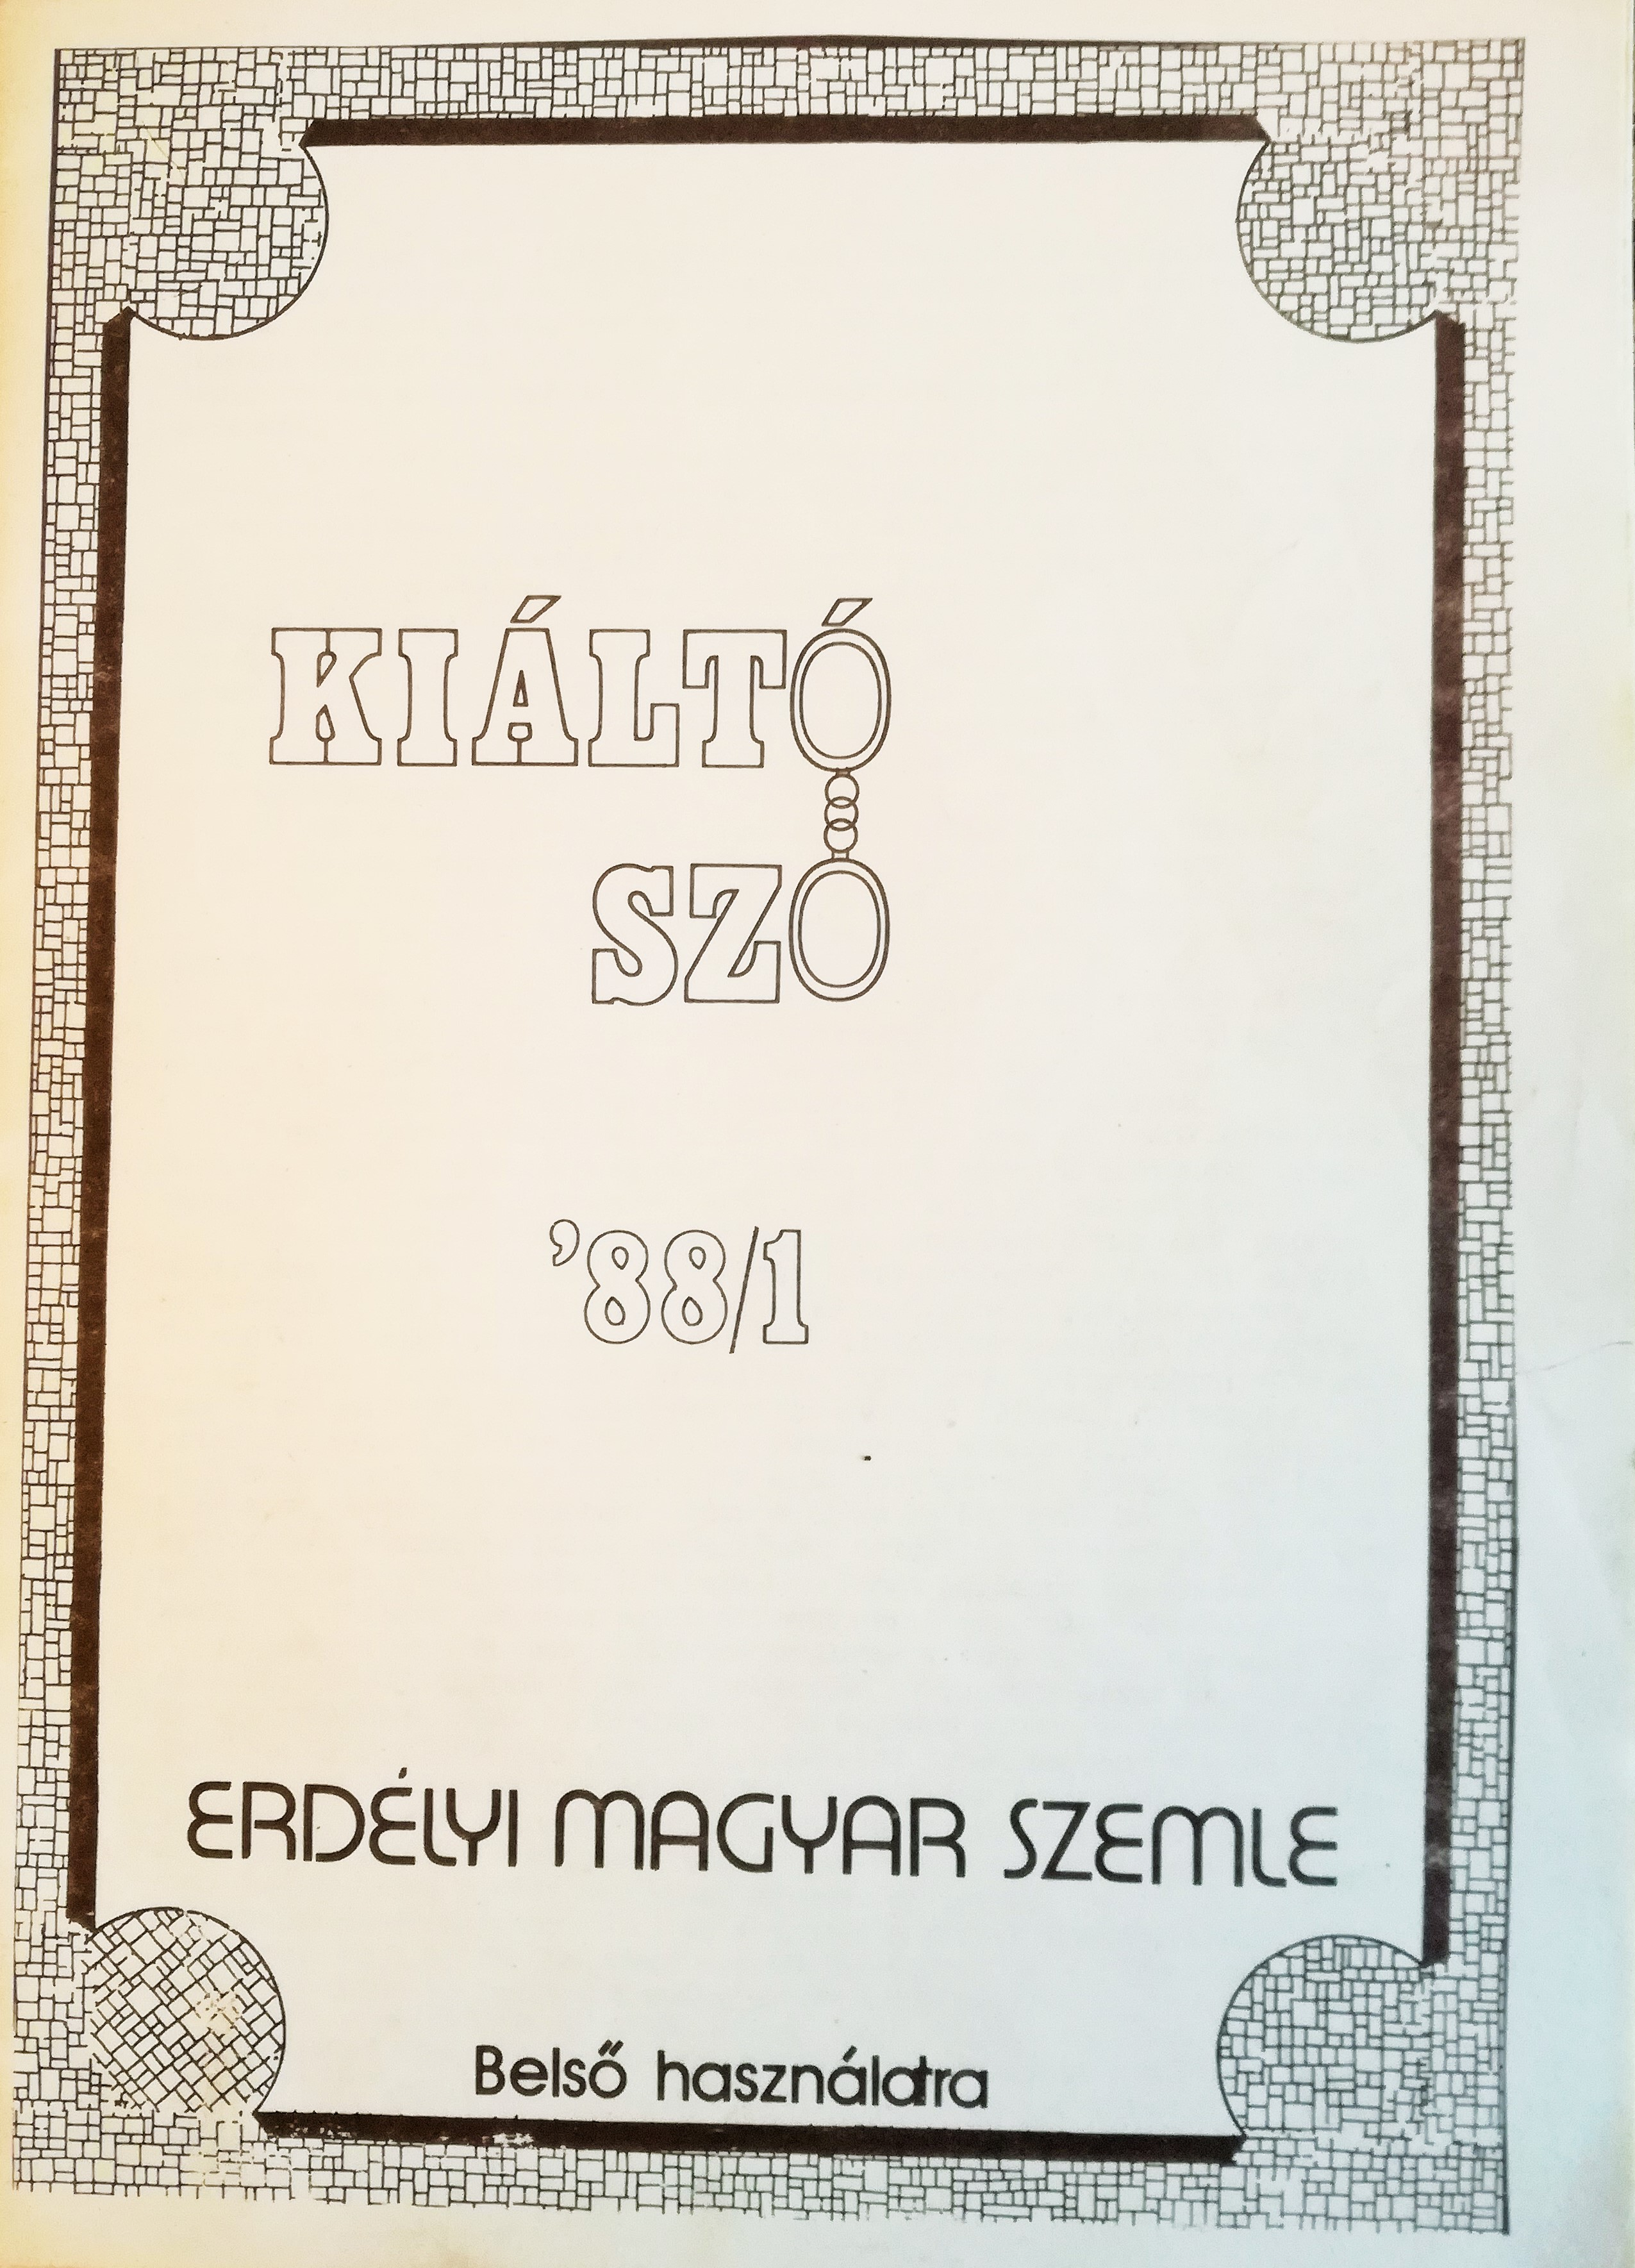 Front cover of the first issue of the Kiáltó Szó samizdat publication